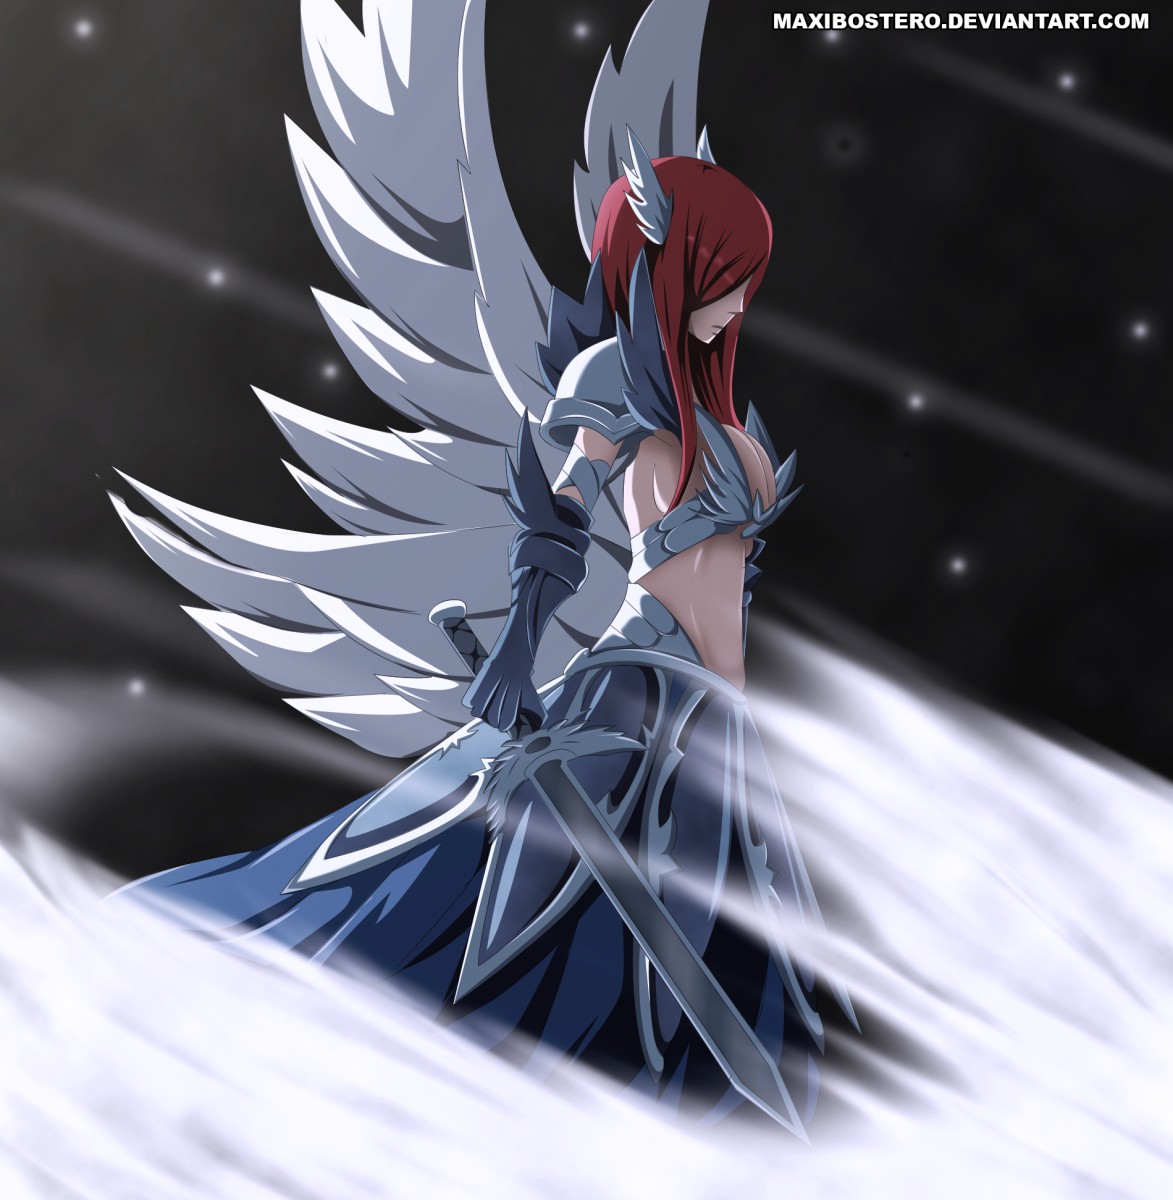 Fairy tail vs alvarez empire erza vs azir fairy tail - Image manga fairy tail ...